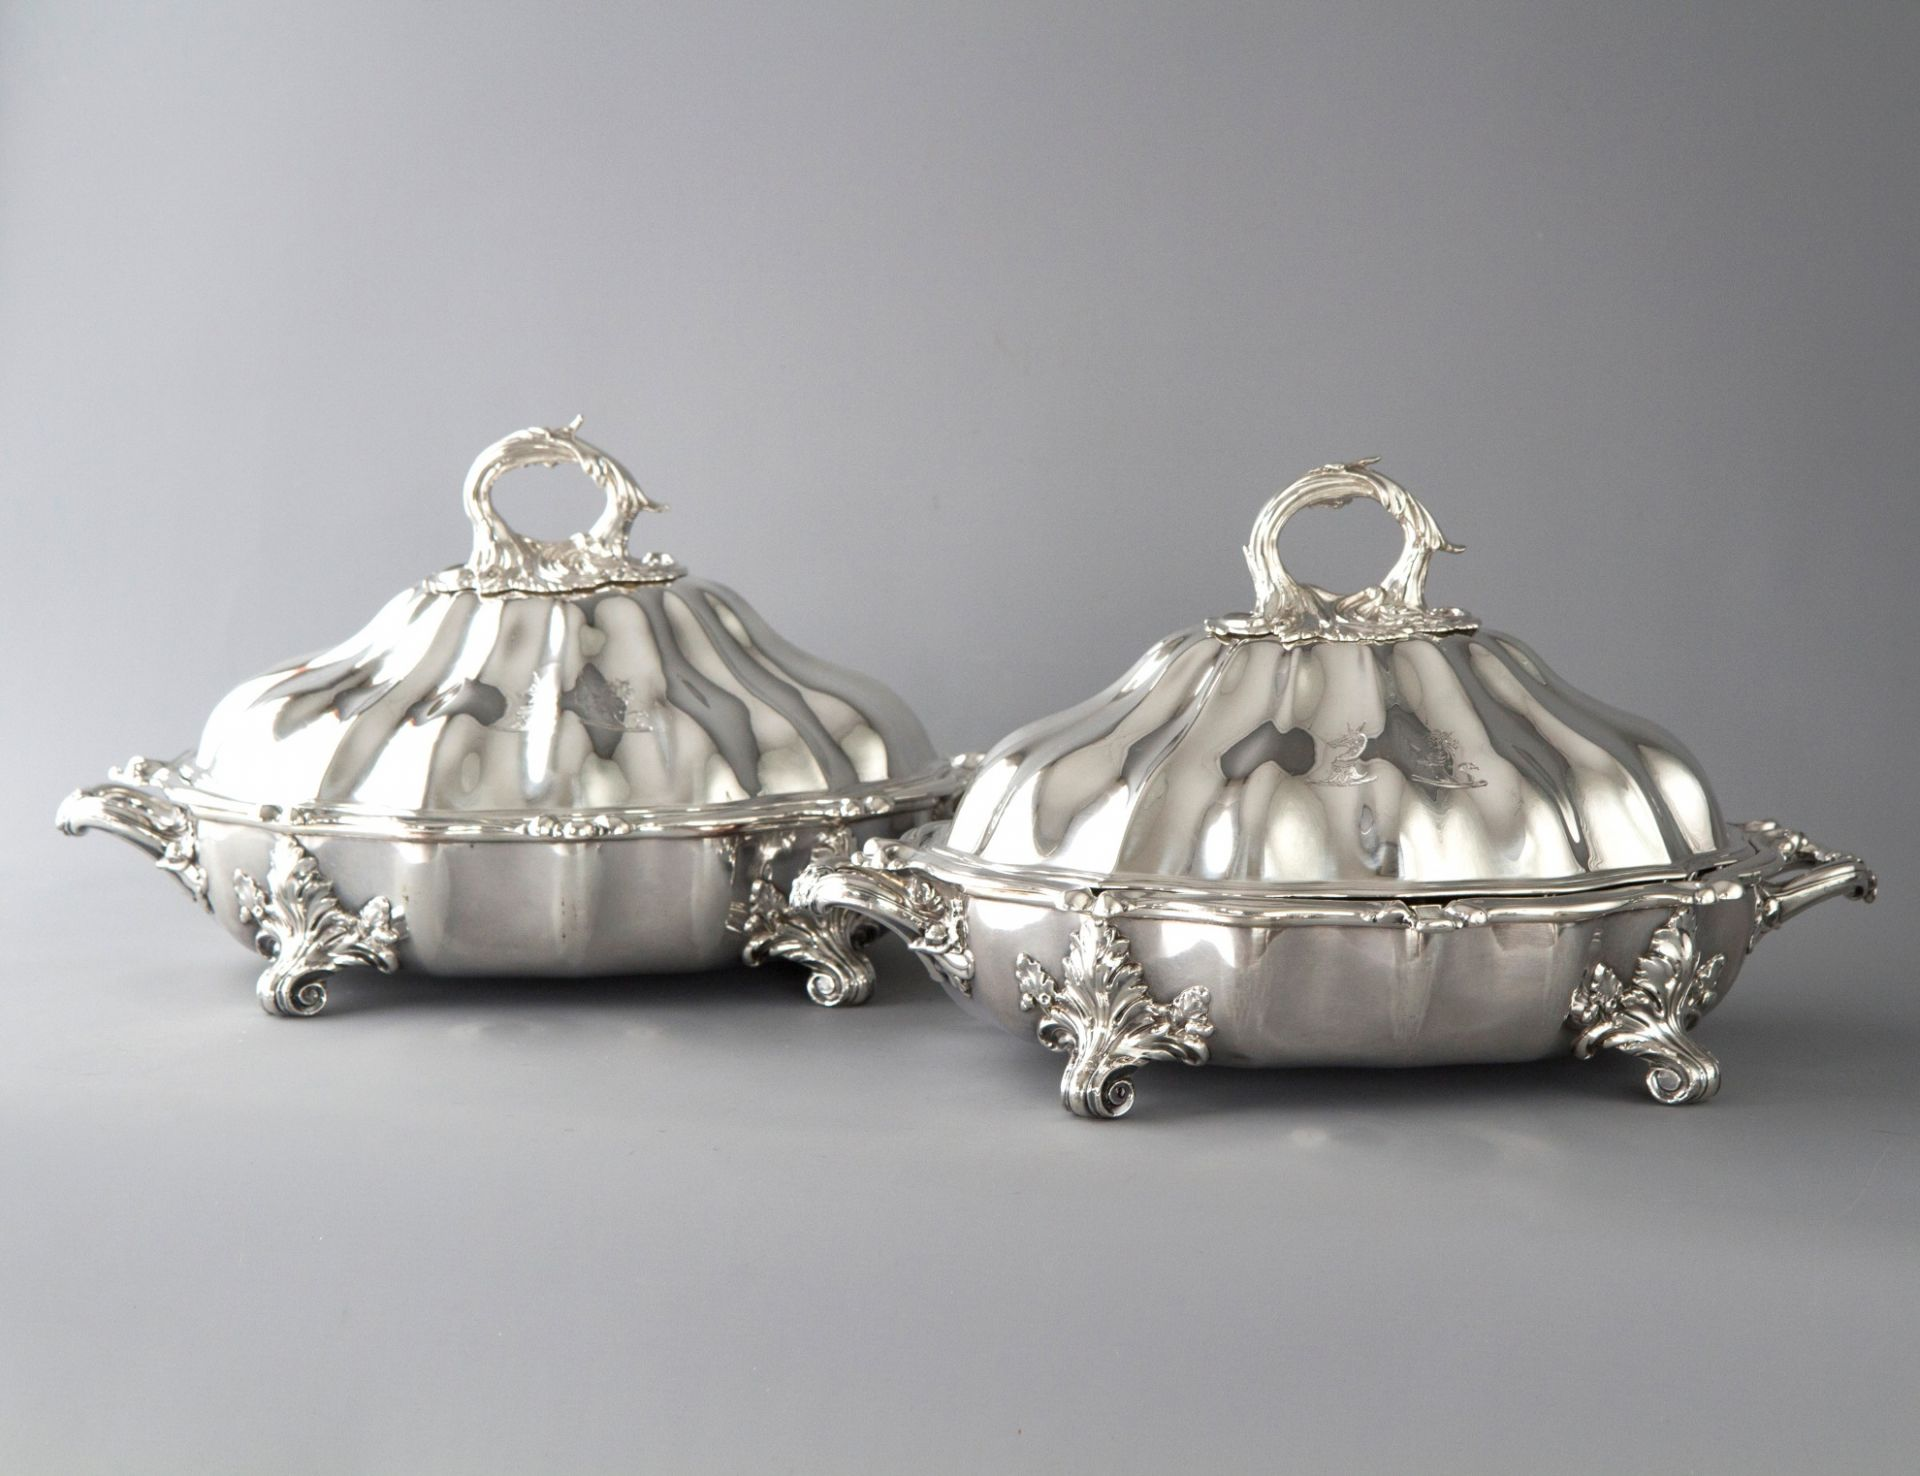 An Outstanding Pair of Silver Vegetable Tureens or Entree Dishes